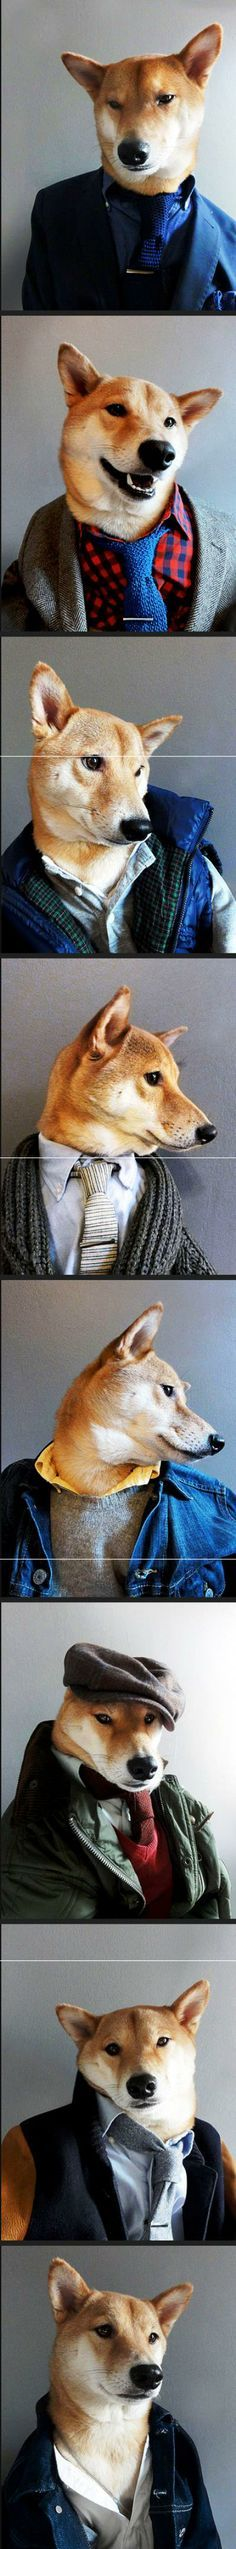 The Men s Fashion Dog Model Funny Dogs Funny Animals Cute Animals Animal Funnies